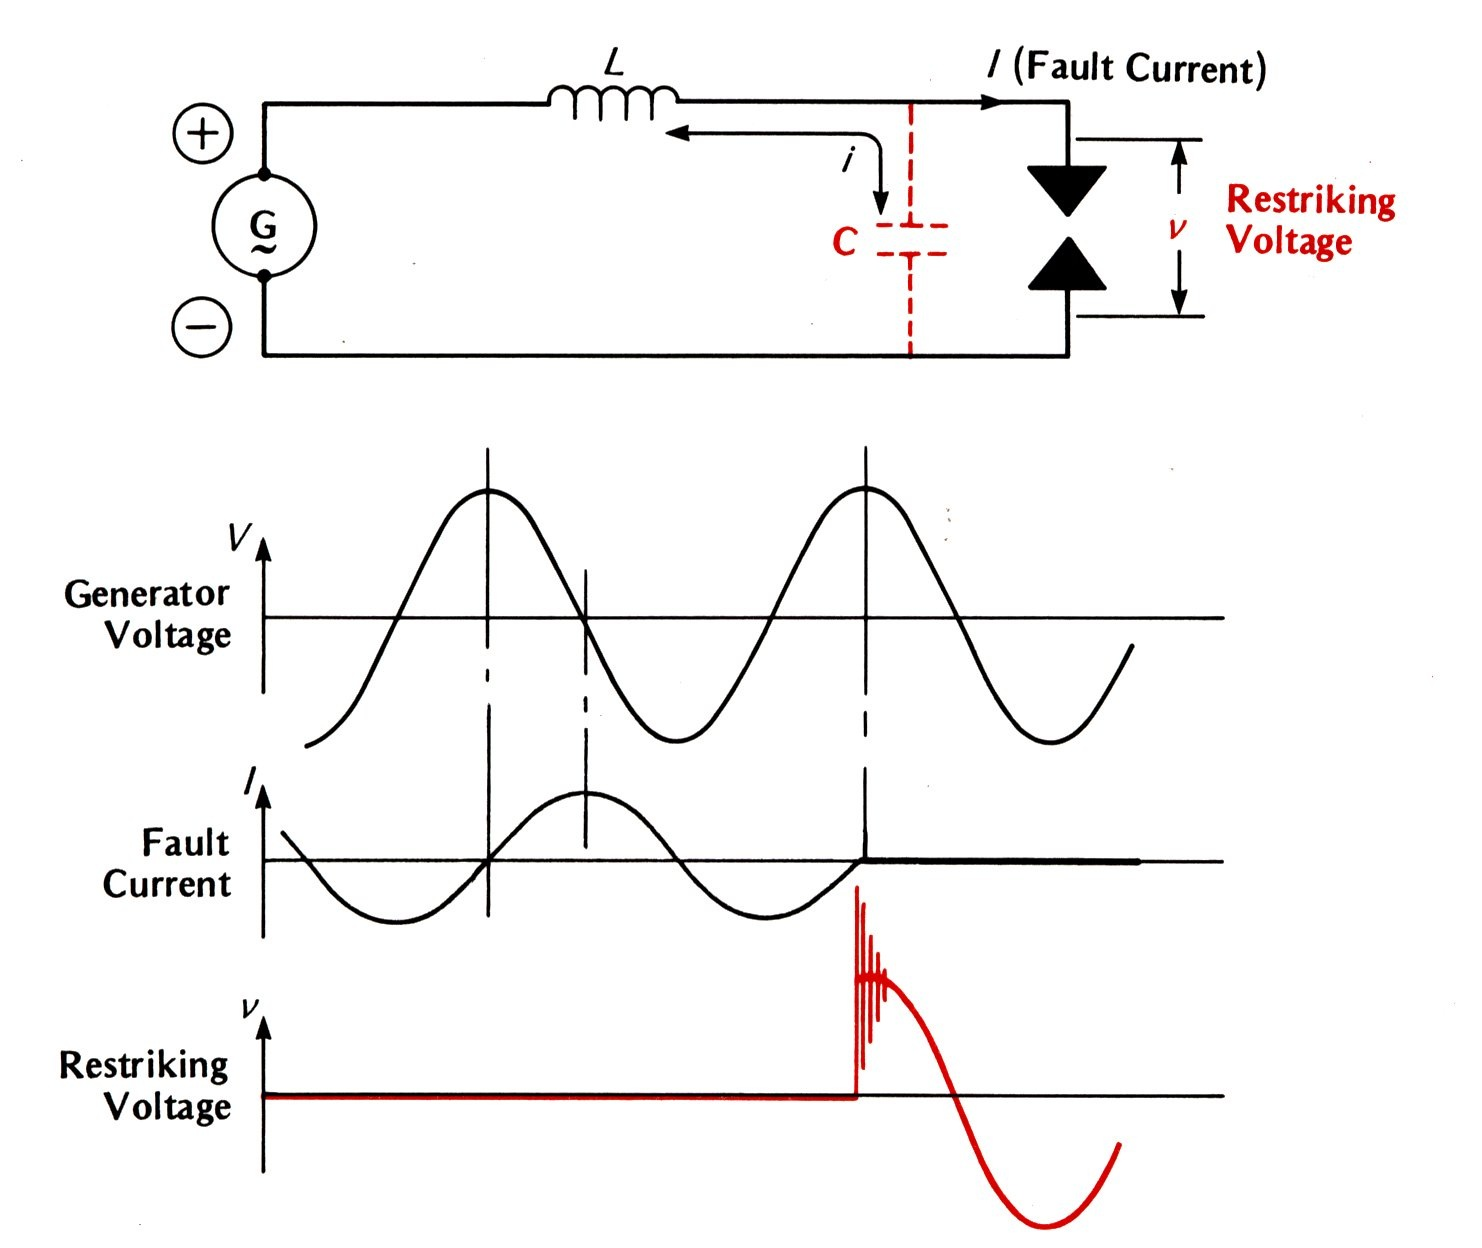 Engineering Photosvideos And Articels Search Engine Short Circuit Waveforms Load Circuited